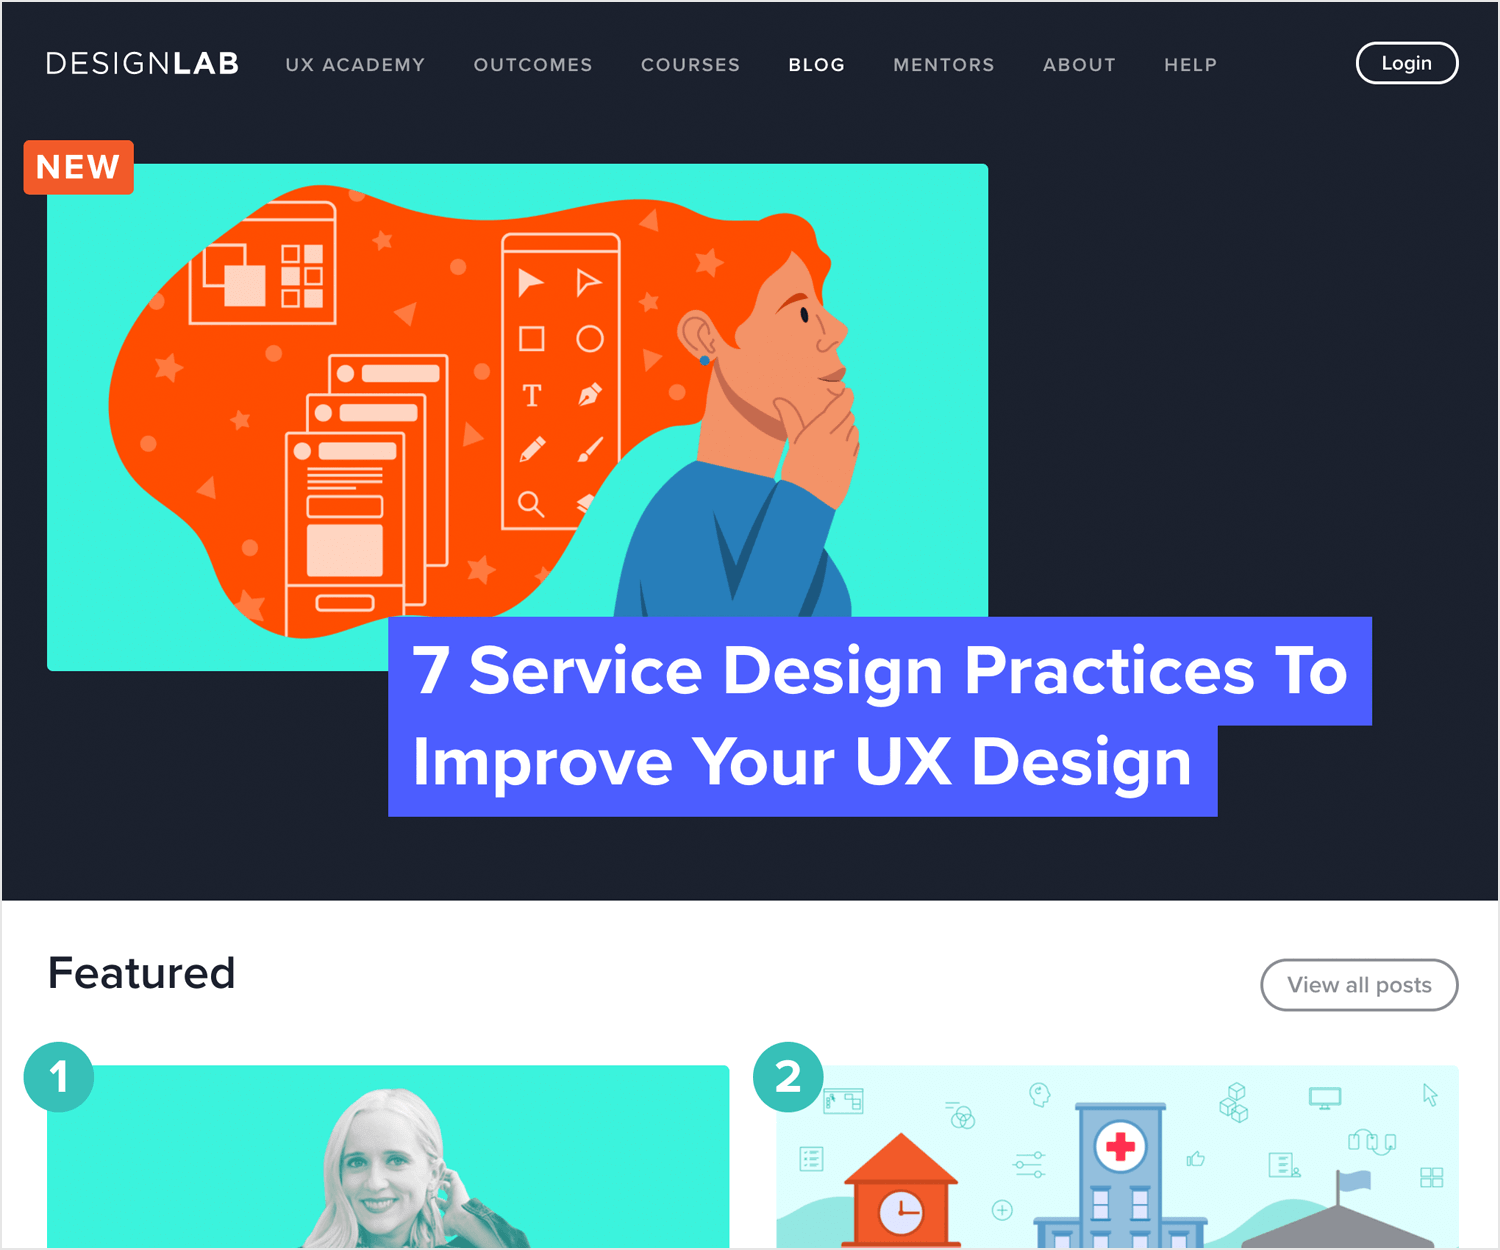 design lab as a ux blog to read interviews with designers